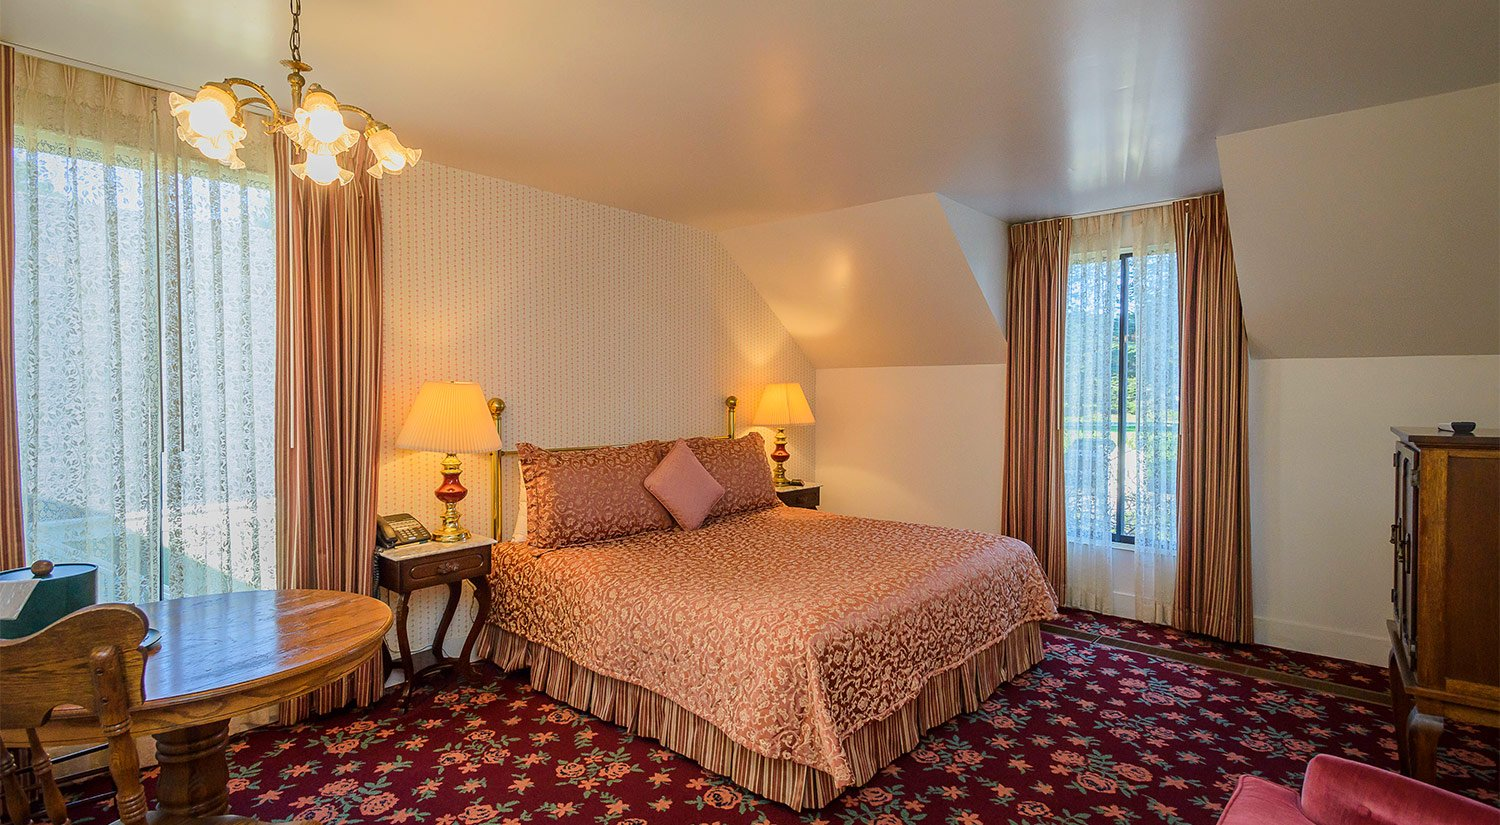 Charming Boutique Guest Rooms, steps from the Mendocino Coast